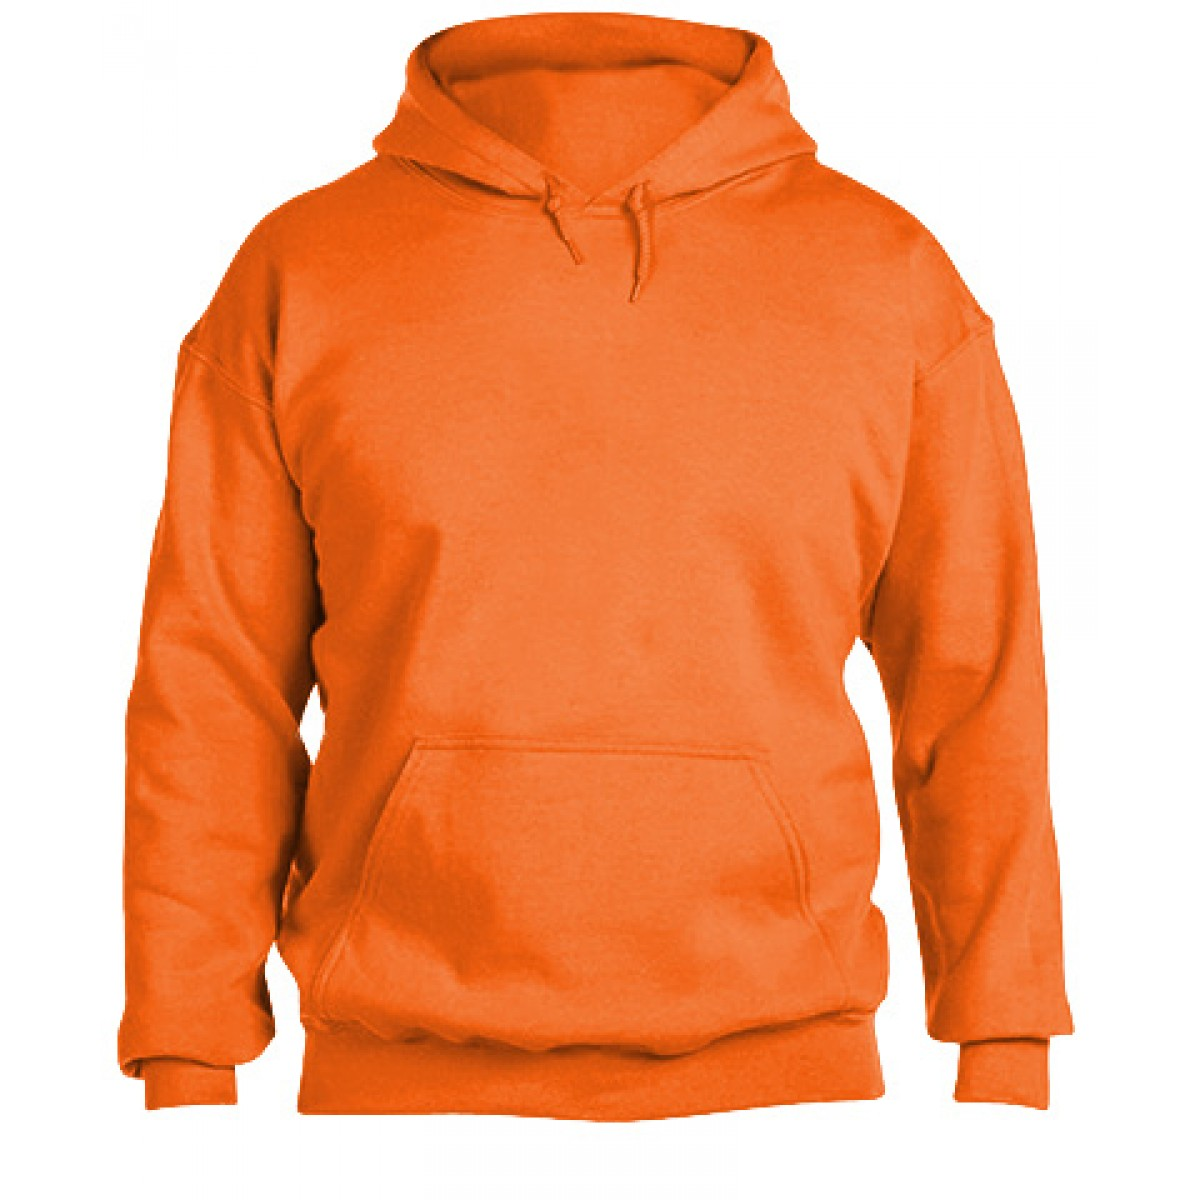 Solid Hooded Sweatshirt  50/50 Heavy Blend-Safety Orange-YL